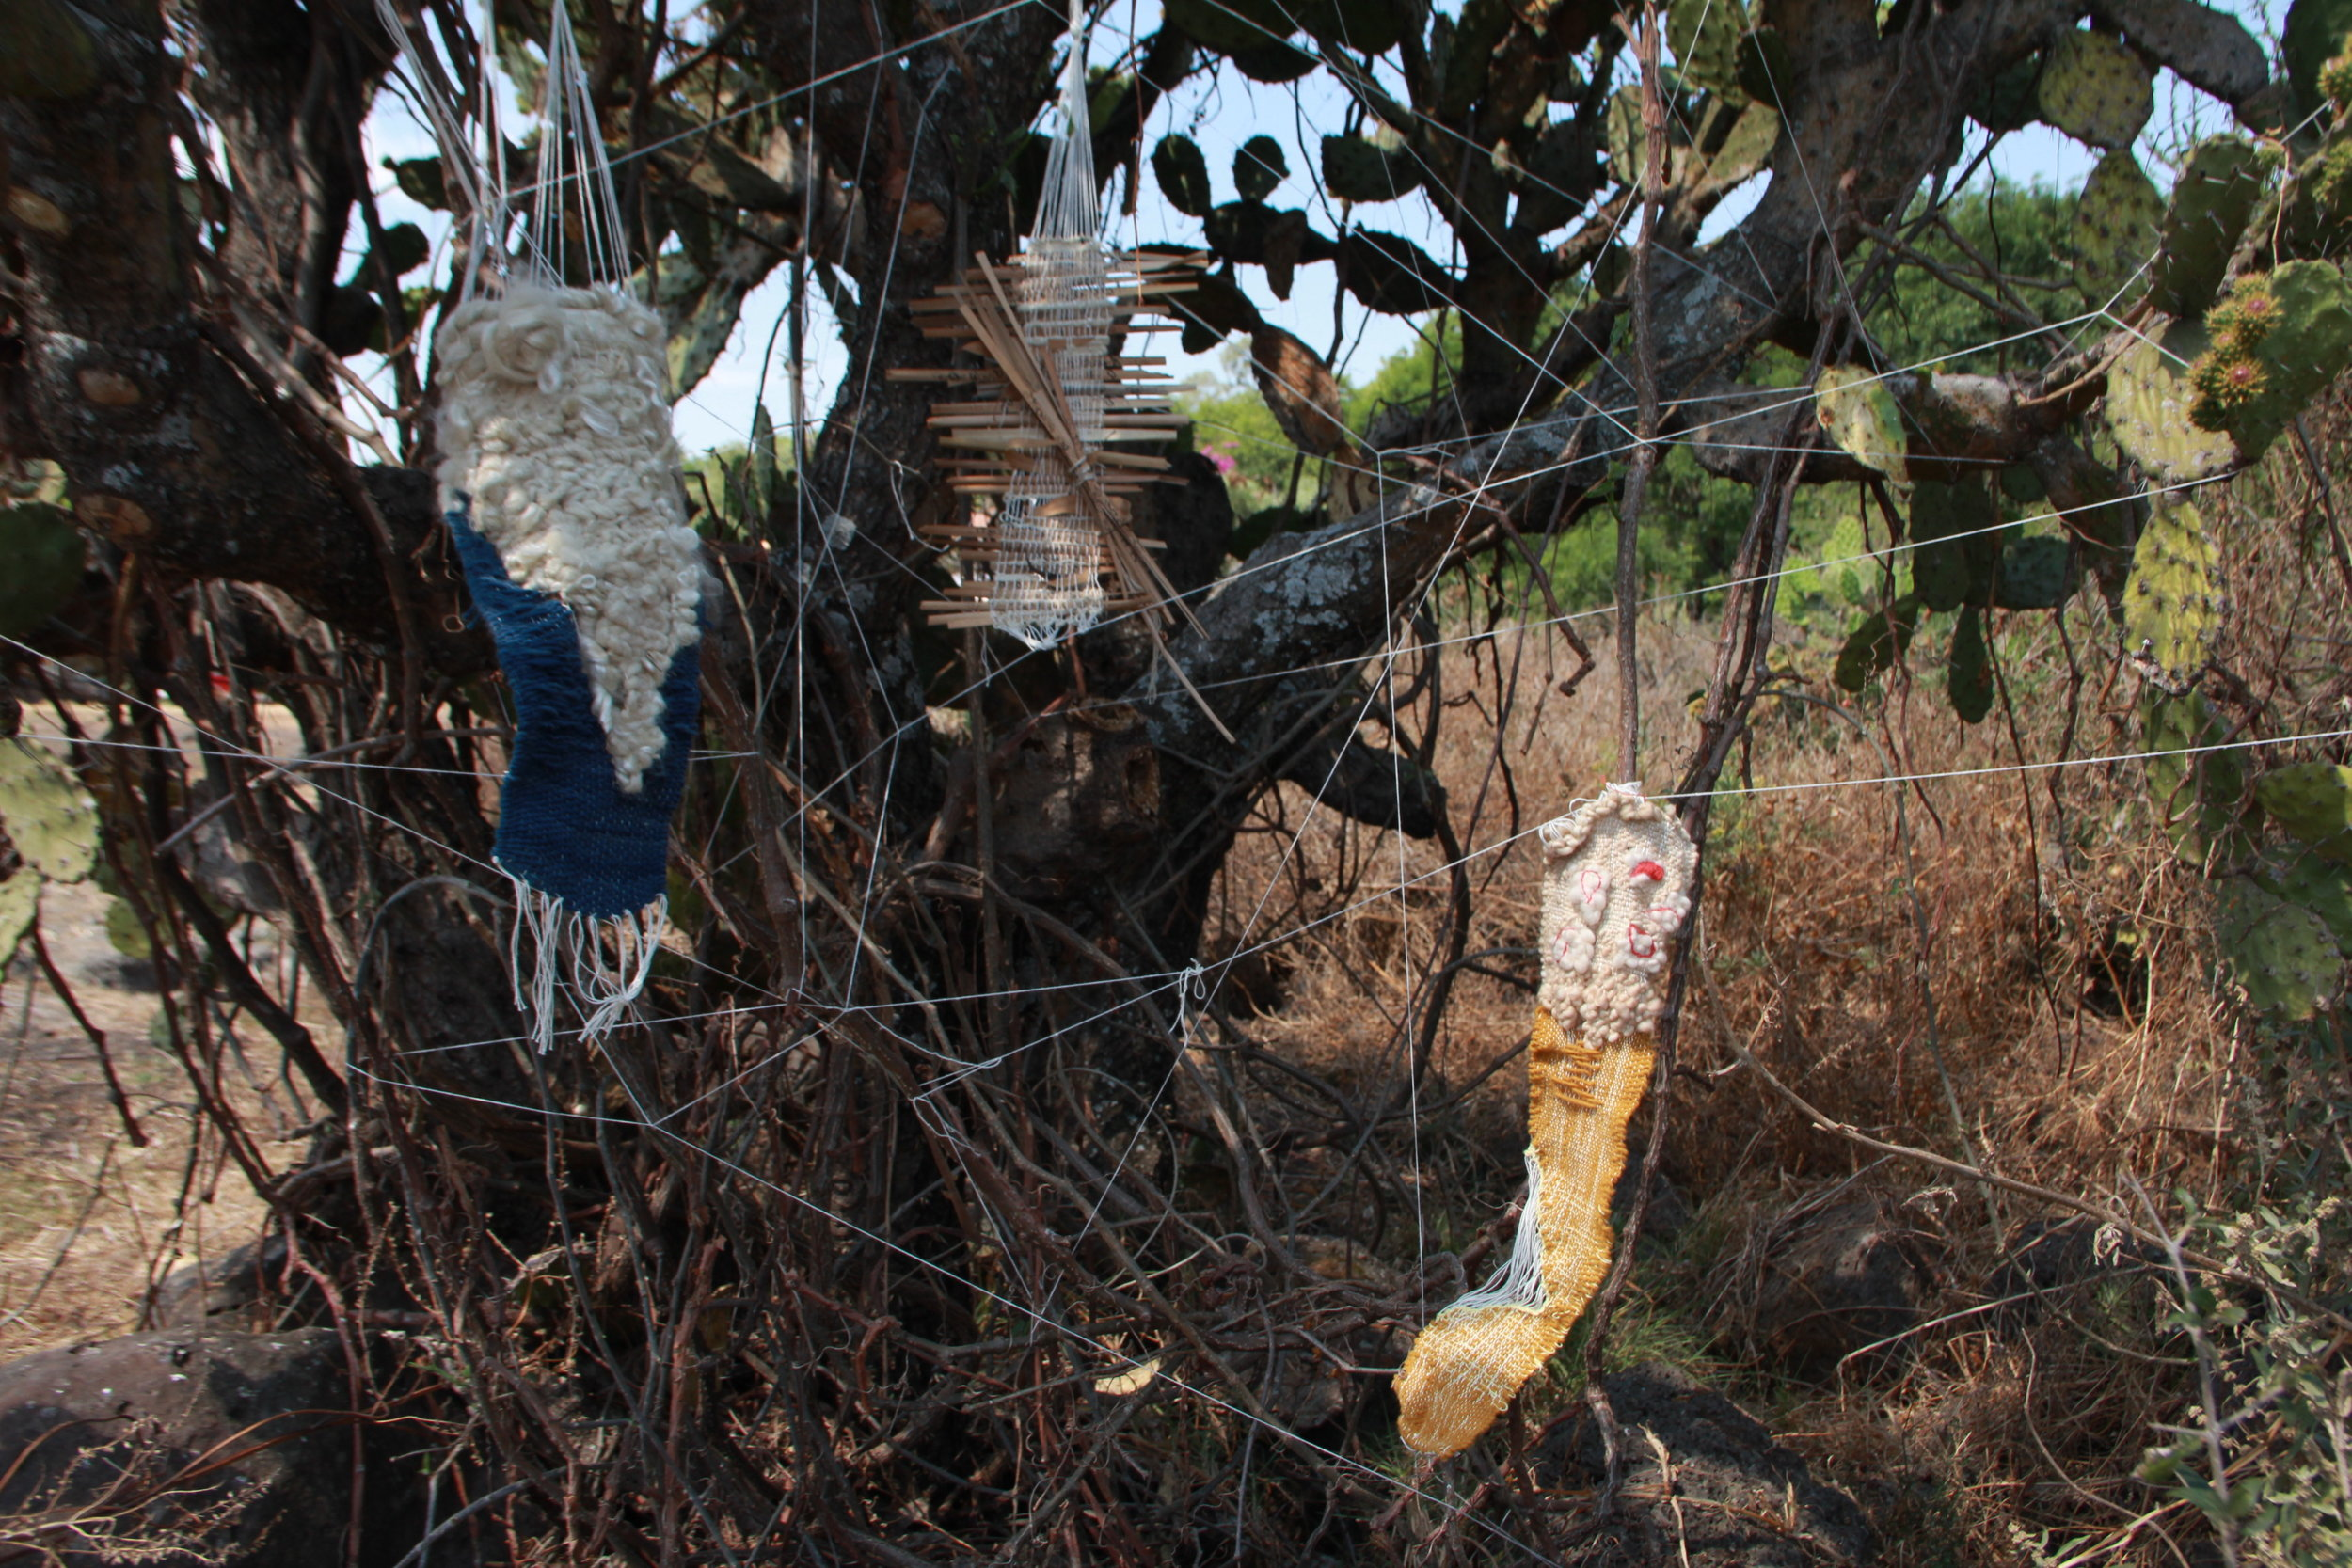 mis tres novias (2019)  Naturally dyed cotton, wool, hemp, linen, eucalyptus leaves, cacti  Site Specific sculpture: Guapamacataro Art and Ecology Center, Michoacan, Mexico  15 x 8 x 8ft